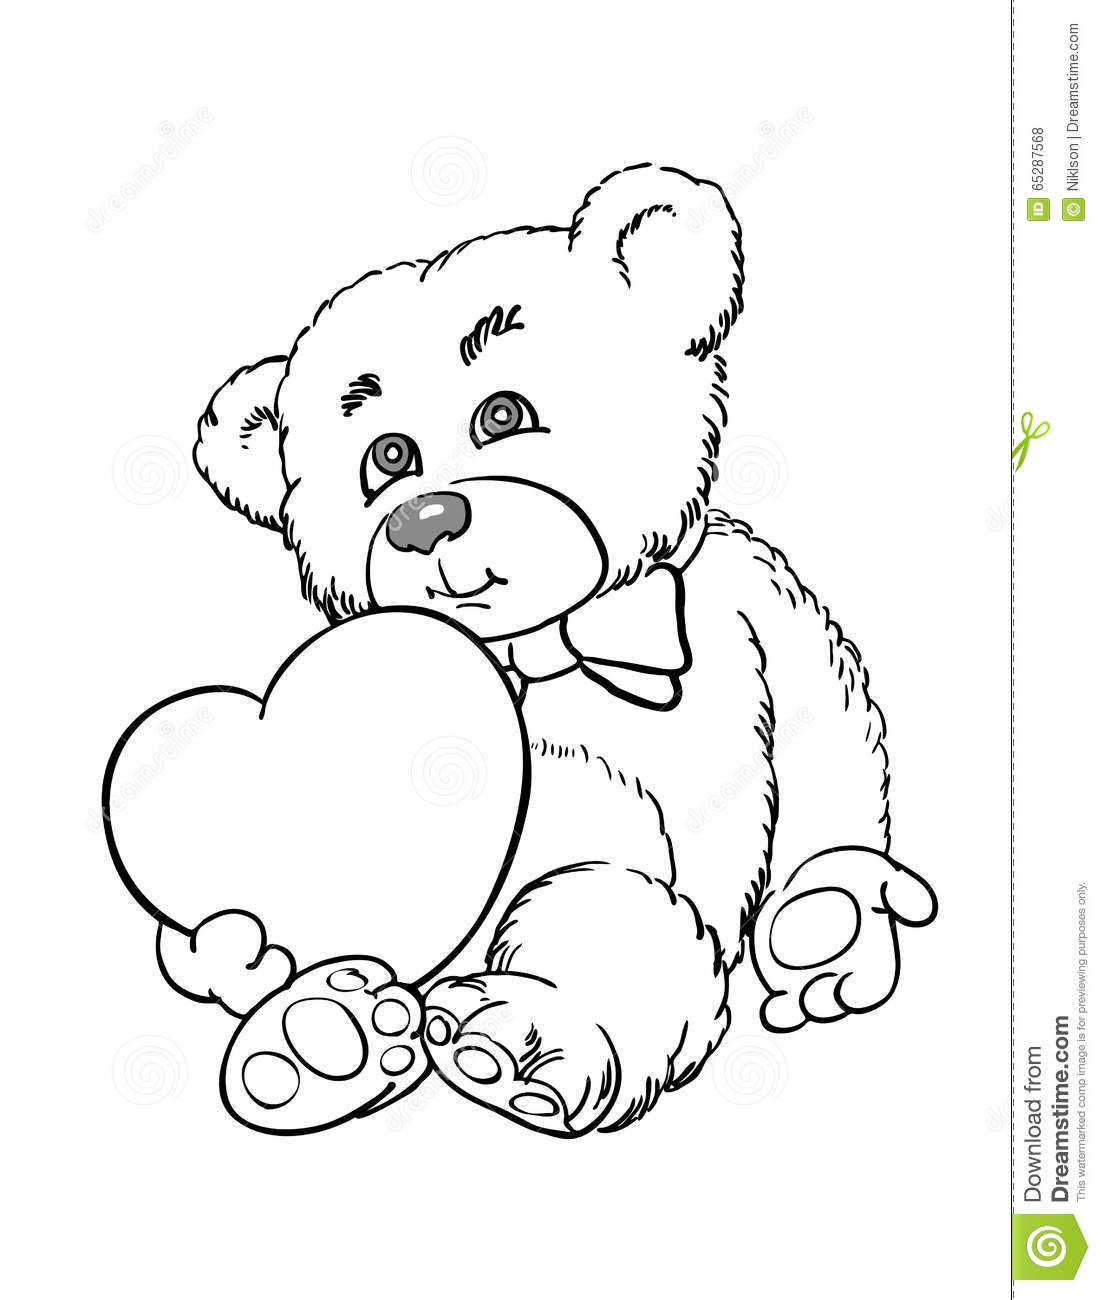 how to draw a teddy bear with heart